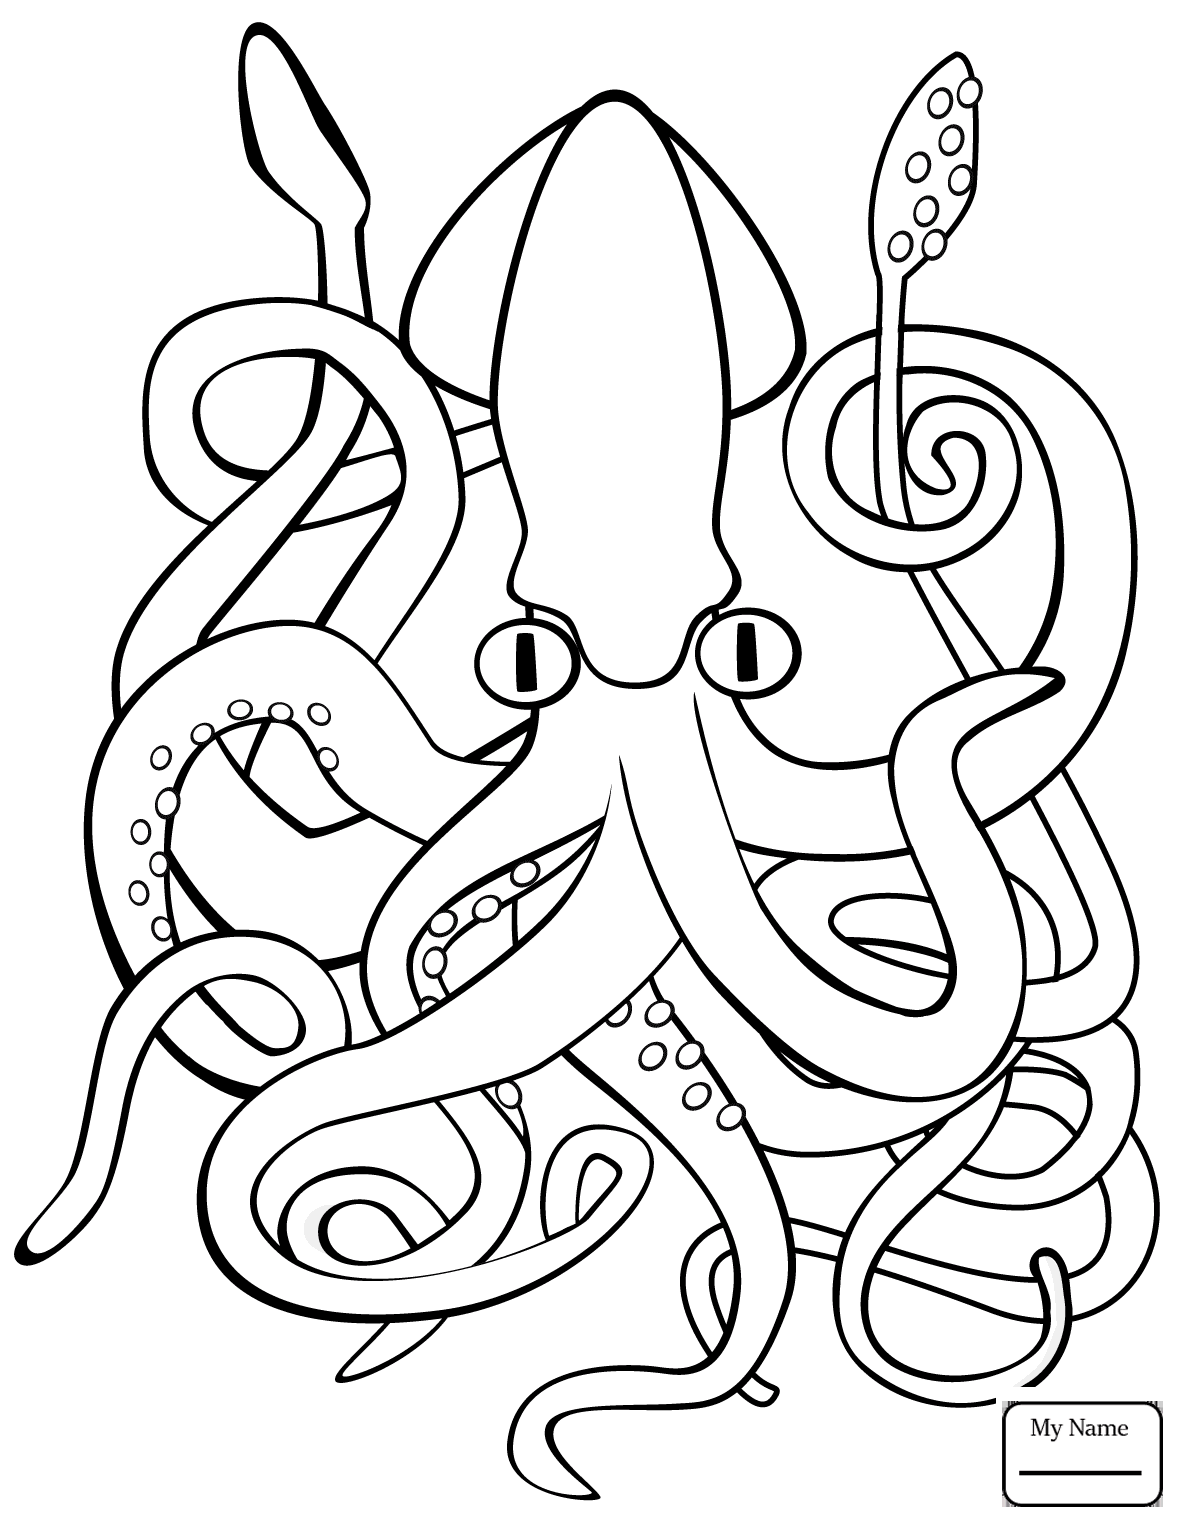 1182x1530 Coloring Pages For Kids Squid Mollusks Giant Squid